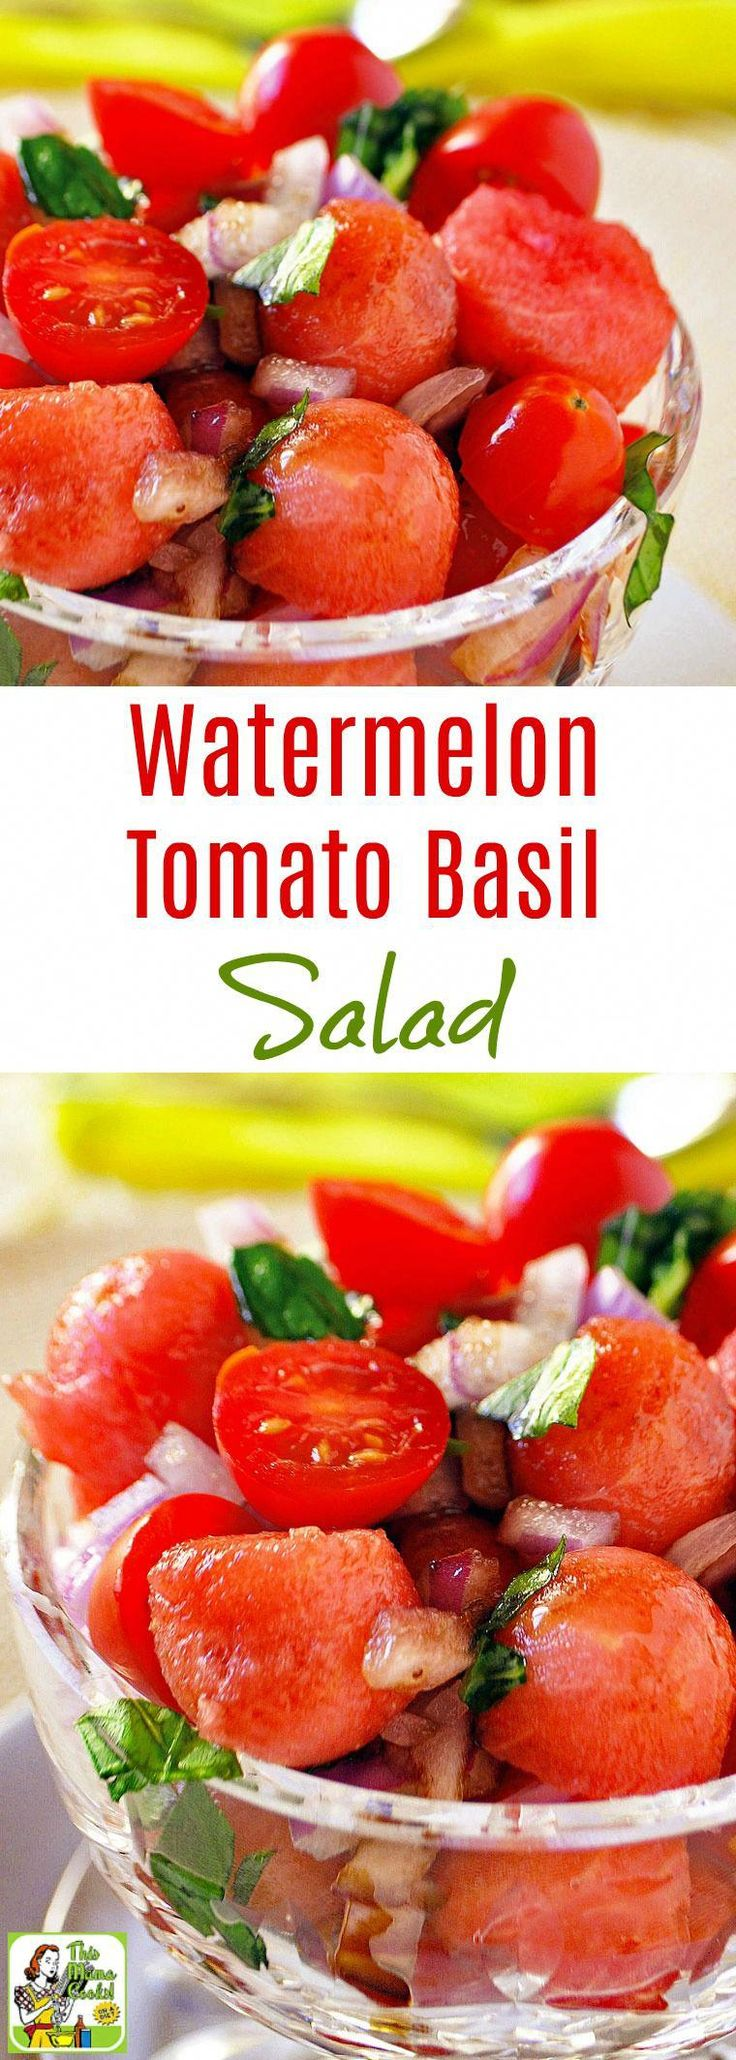 This Easy Watermelon Tomato Basil Salad recipe is ideal for summer cookouts or p…